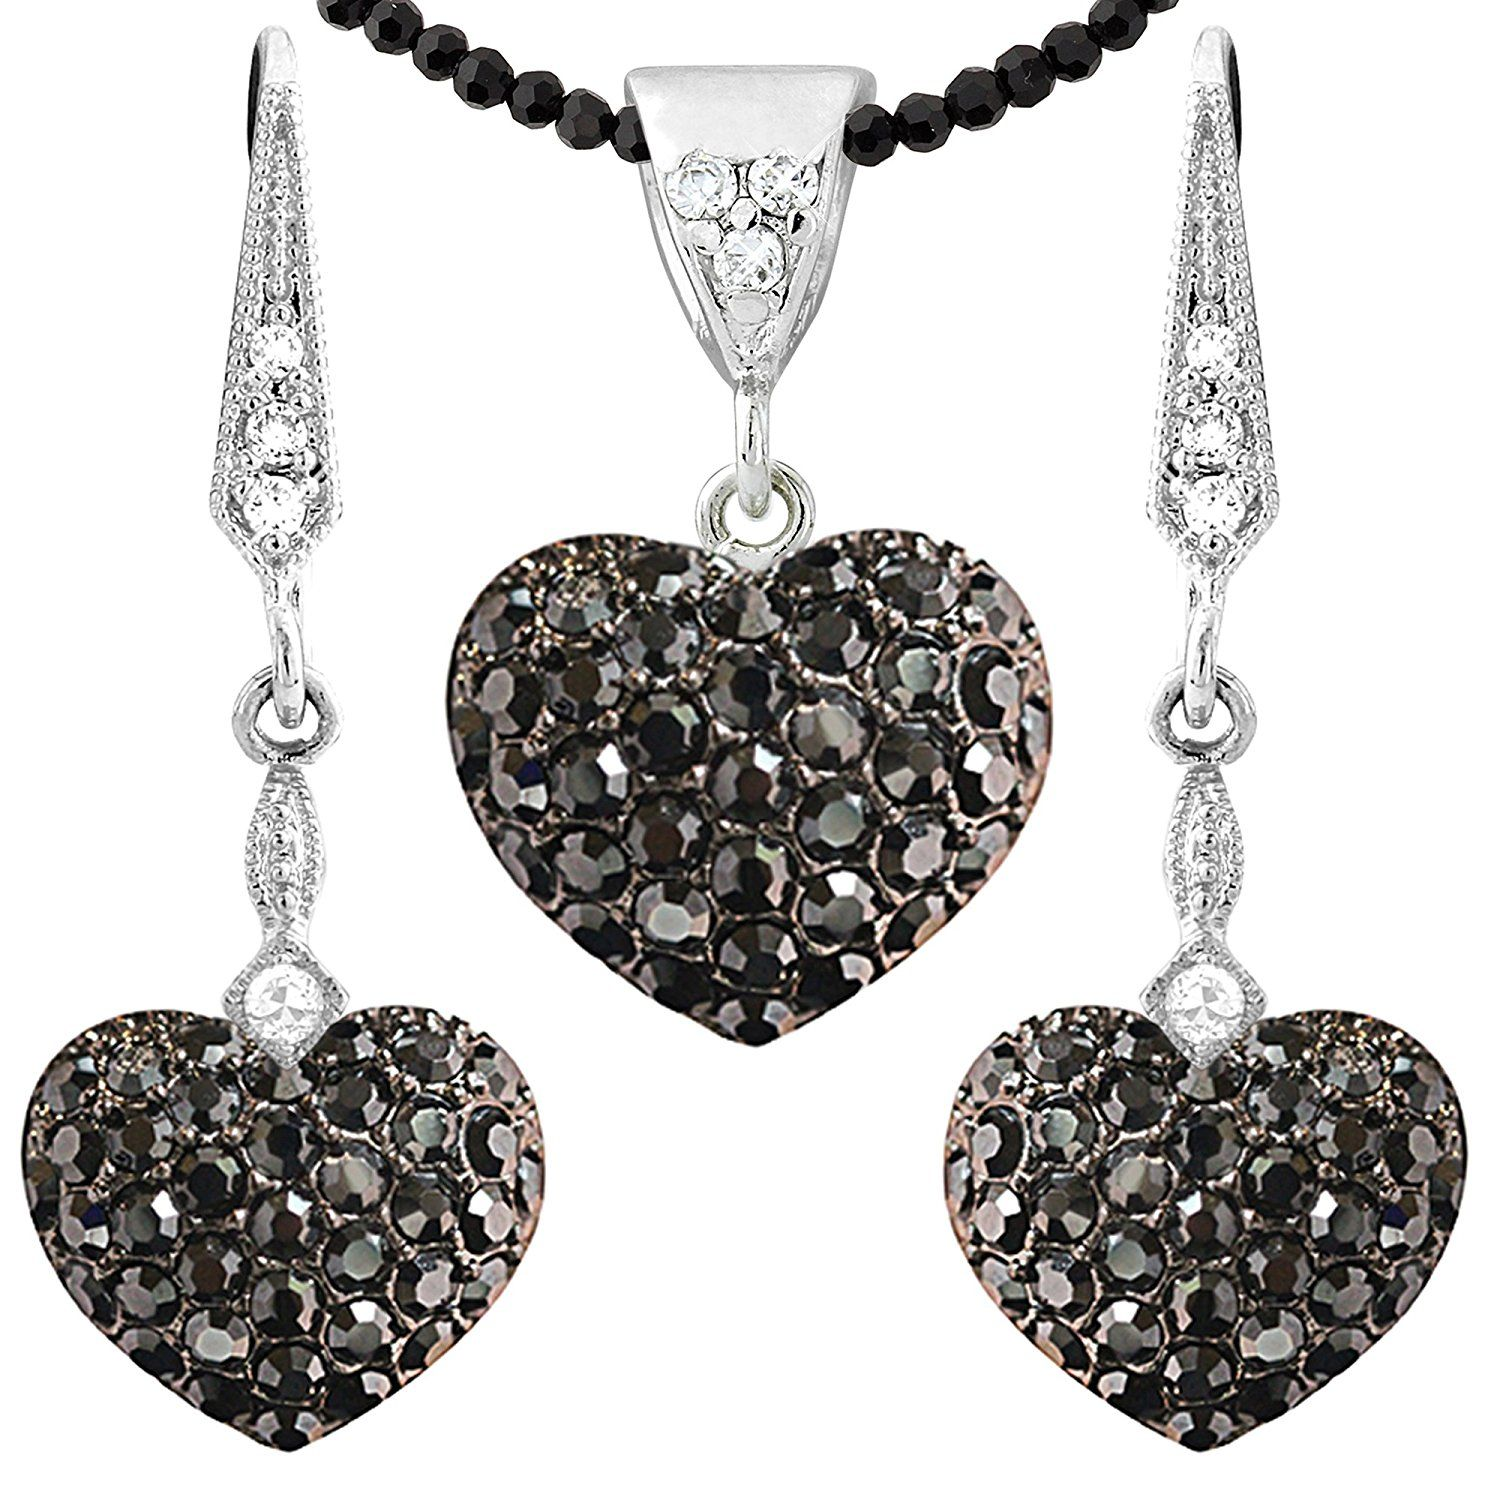 Womens Chain Pendant CZ Cut You Heart Shaped Black ANAZOZ Stainless Steel Necklaces